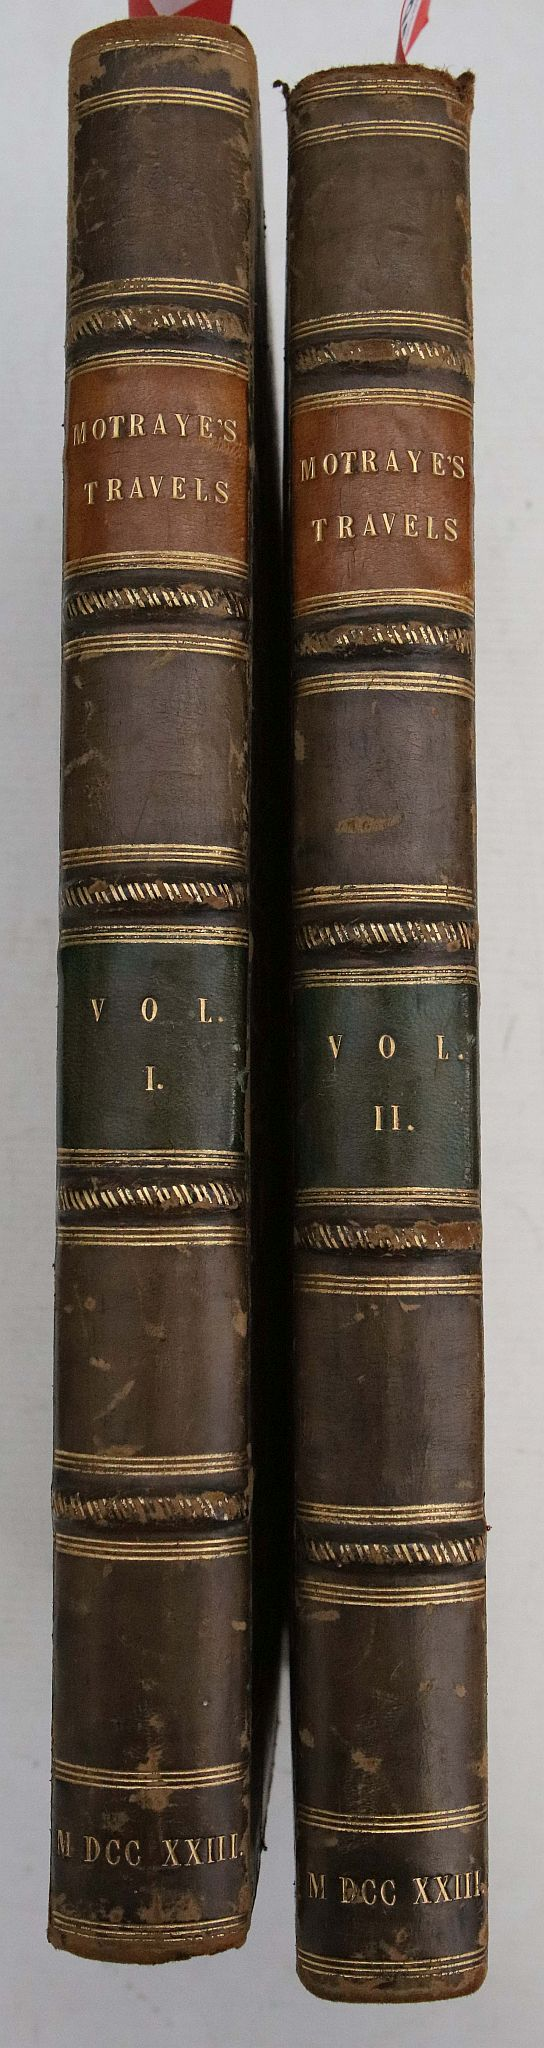 MOTRAYE, A. de la. Travels Through Europe, Asia, and into Part of Africa. London: Printed for the Author, 1723. 2 volumes, folio. 47 plates (including frontispiece to both volumes, some plates folding and maps). (Spotting, light browningand occasional tears to plates) Later half calf (rubbed). Provenance: J. Alexander Pierson (bookplate), Hugh Macamdsen (signature). (2)